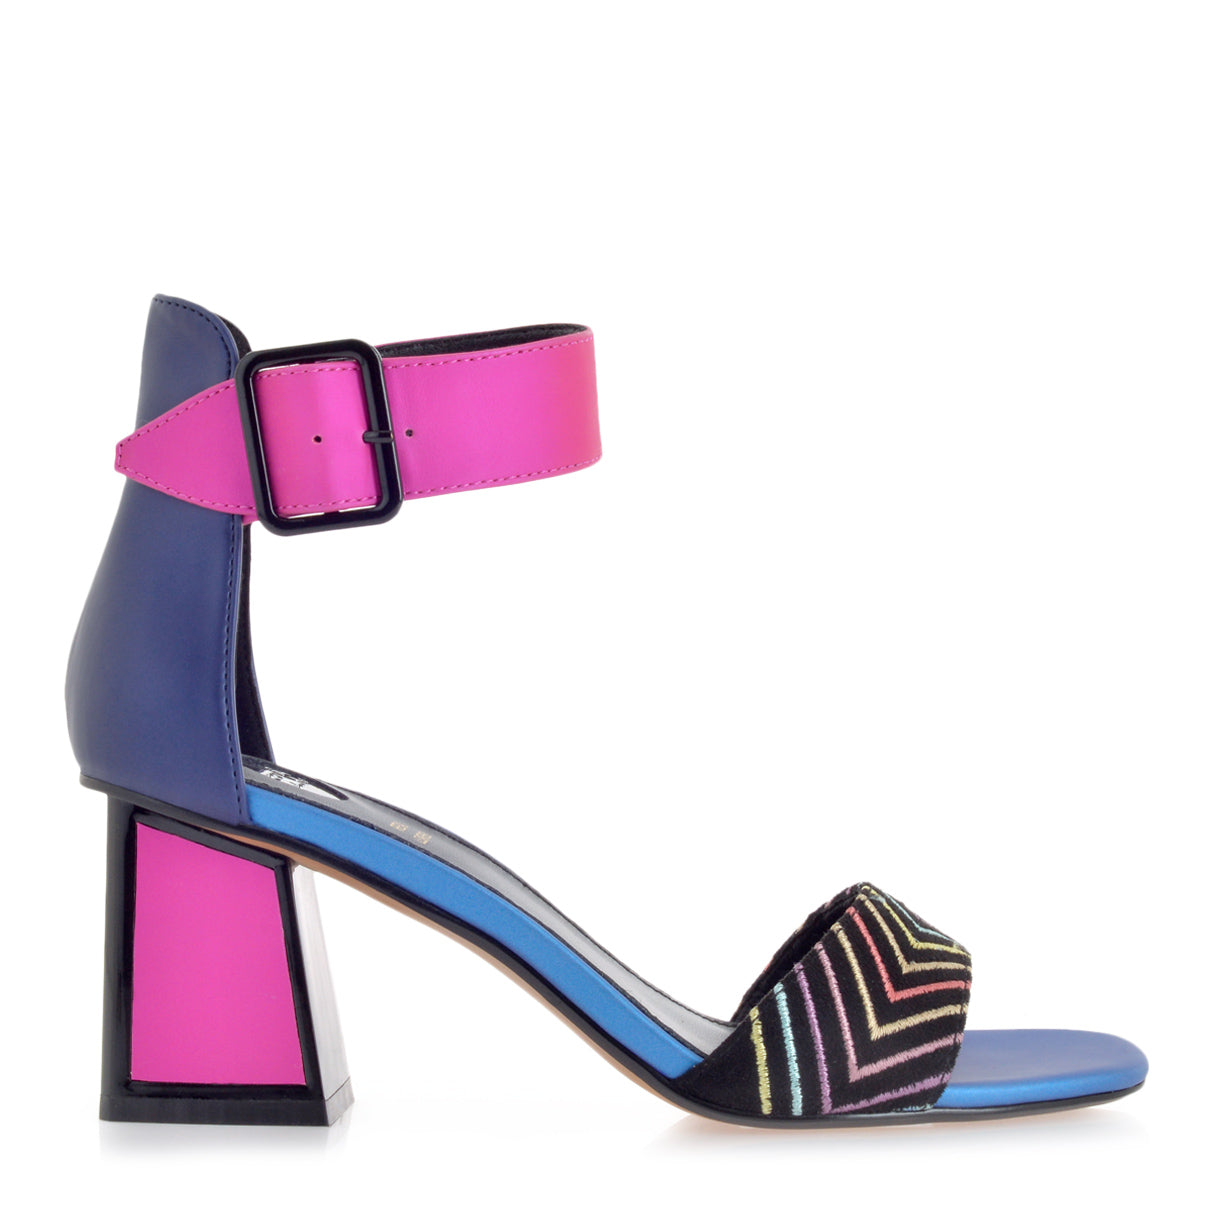 The Exe sandal features a pink geometric mid height block heel outlined in black with a rubber sole. The model is cut in a vapor wave colored fabric and decorated with a pink adjustable strap around the ankle and a strap over the foot with multi-colored arrow stripes.  Heel Height: 7 cm. At Shoe Be Do in New Orleans,la.